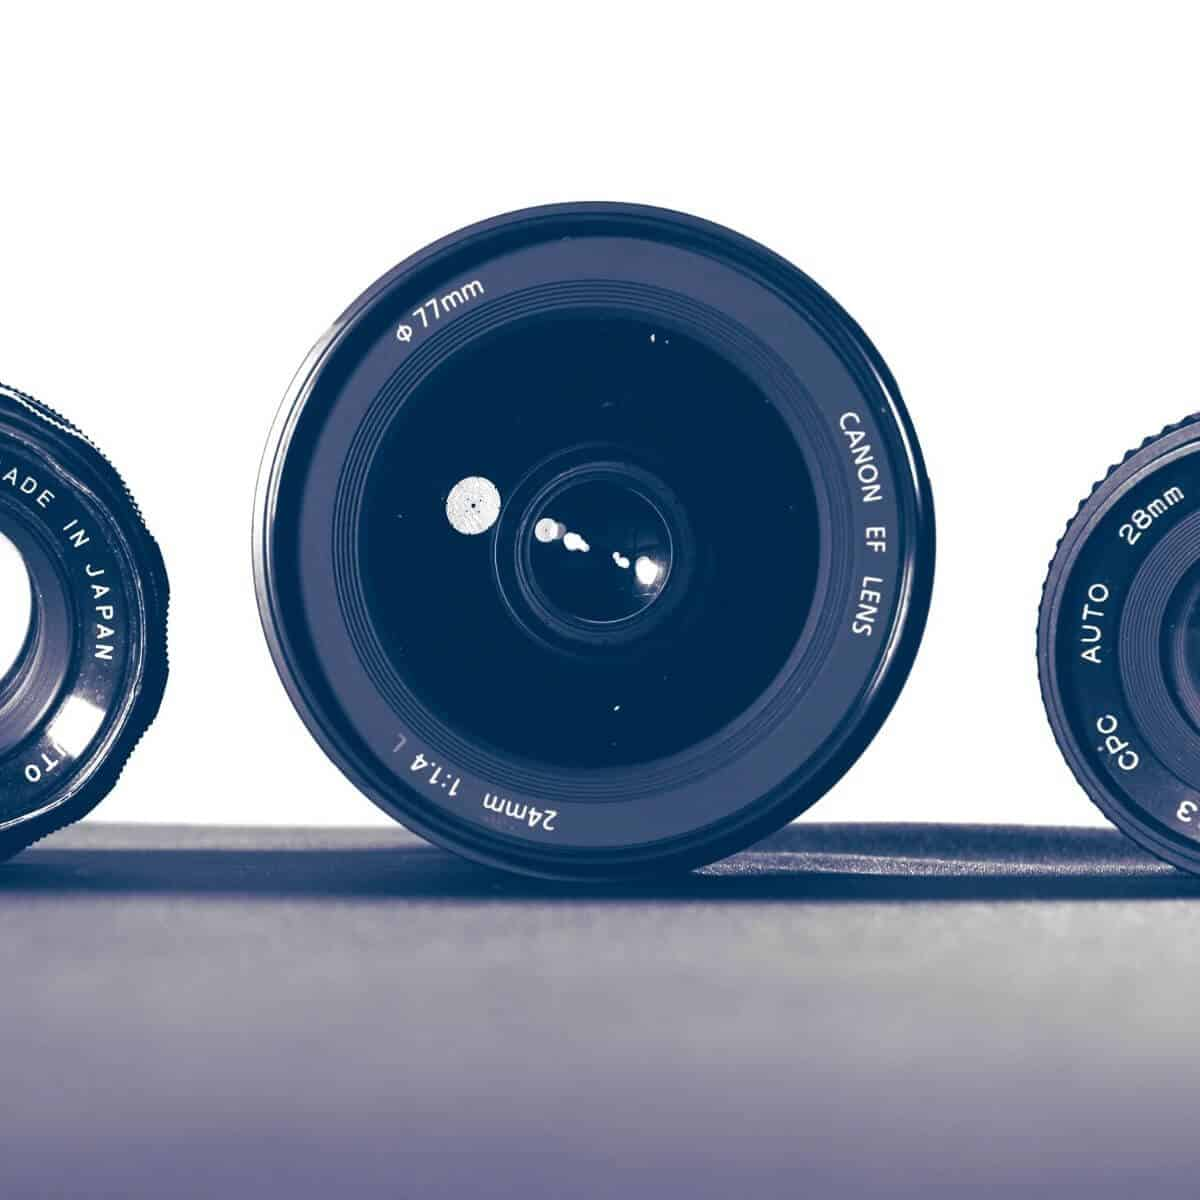 Three camera lenses.